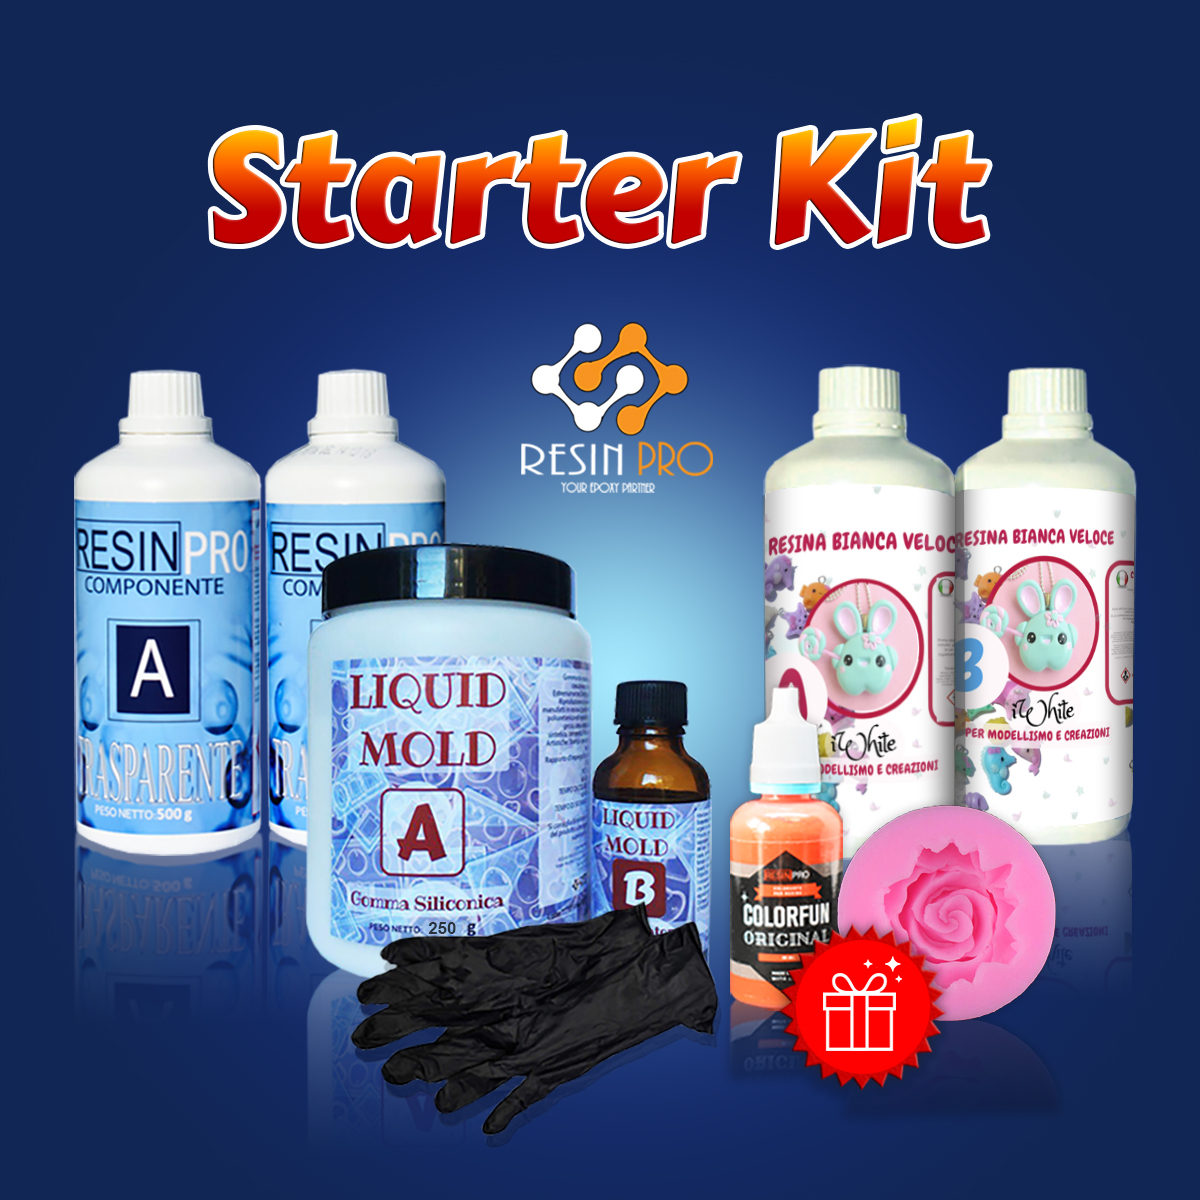 STARTER KIT PRO with Silicone rubber for casting